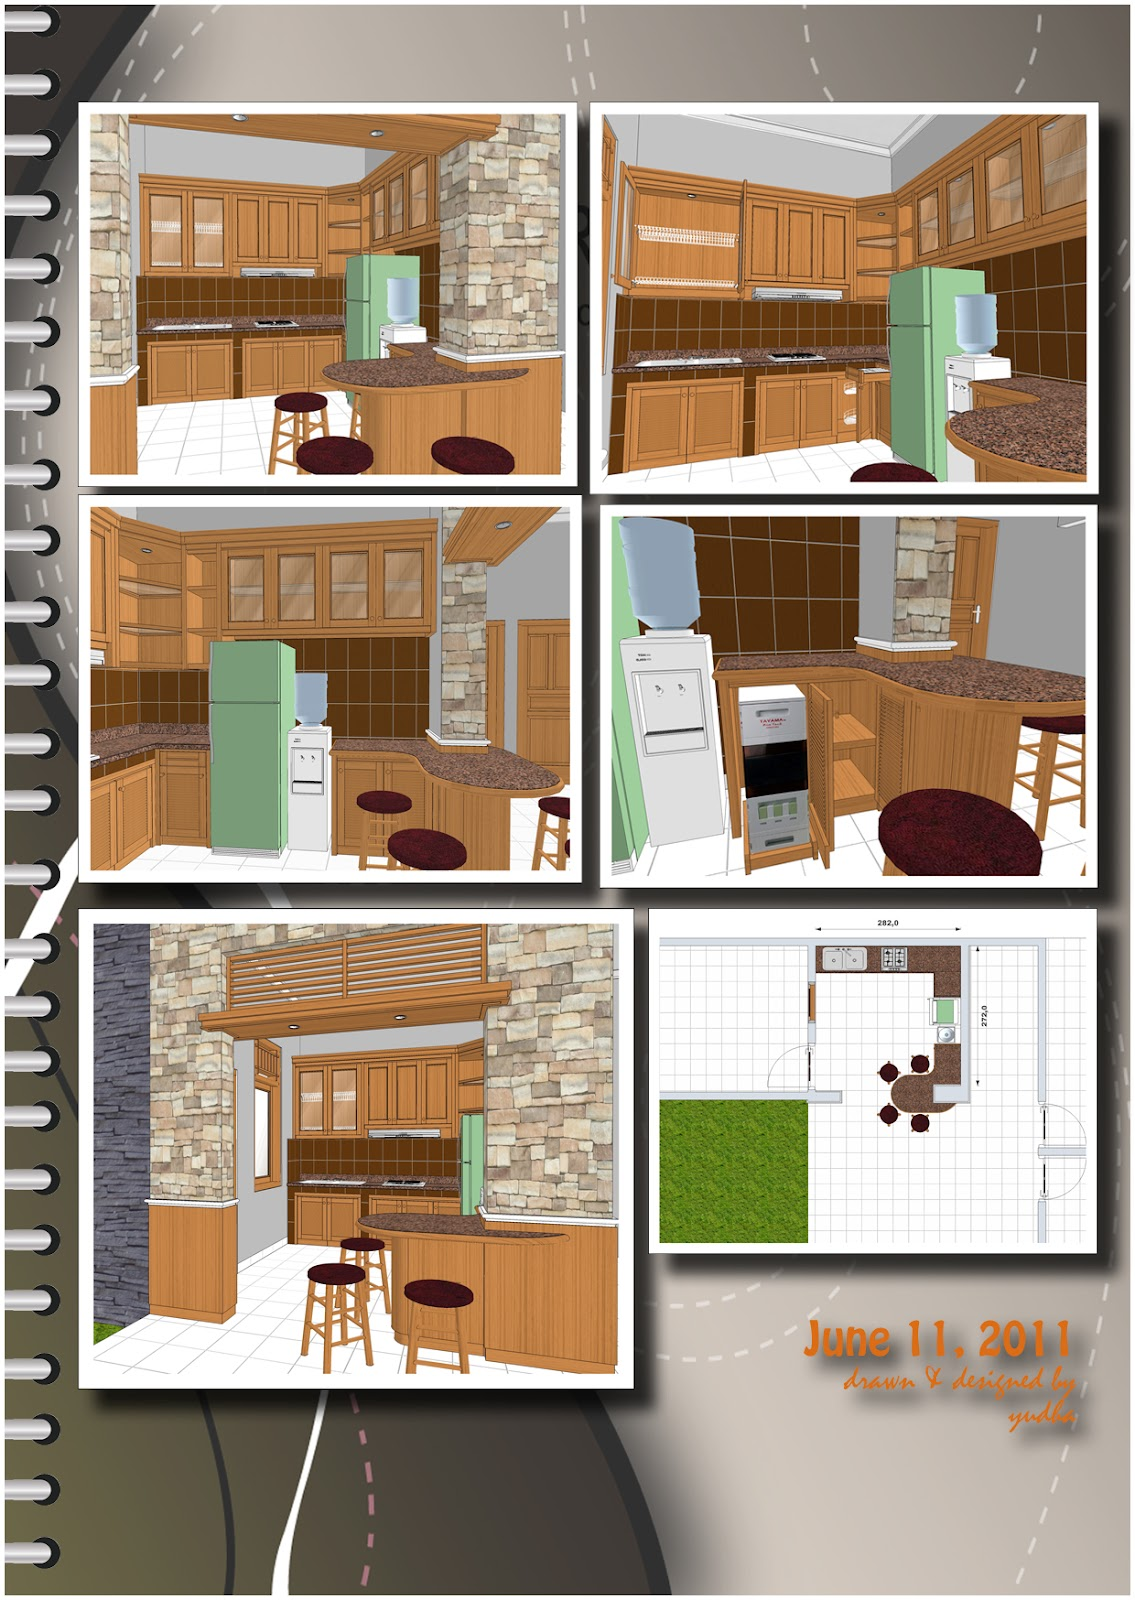 Kitchen set plus minibar katalog desain pak de i for Katalog kitchen set